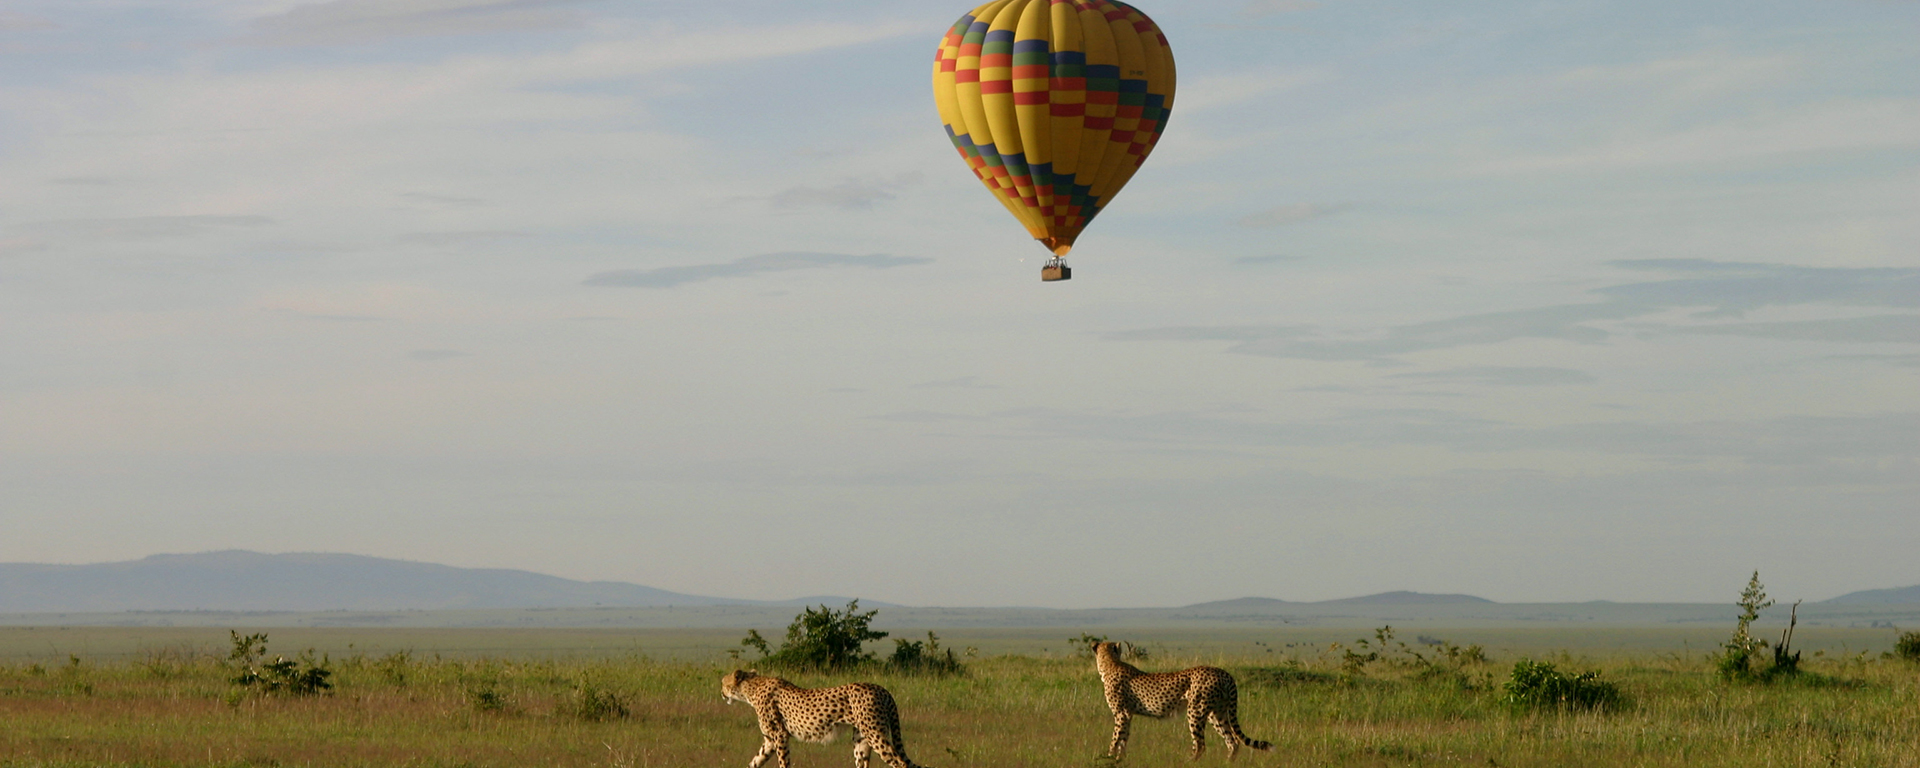 Airborne above the Serengeti or Masai Mara eco-systems in a hot-air balloon.